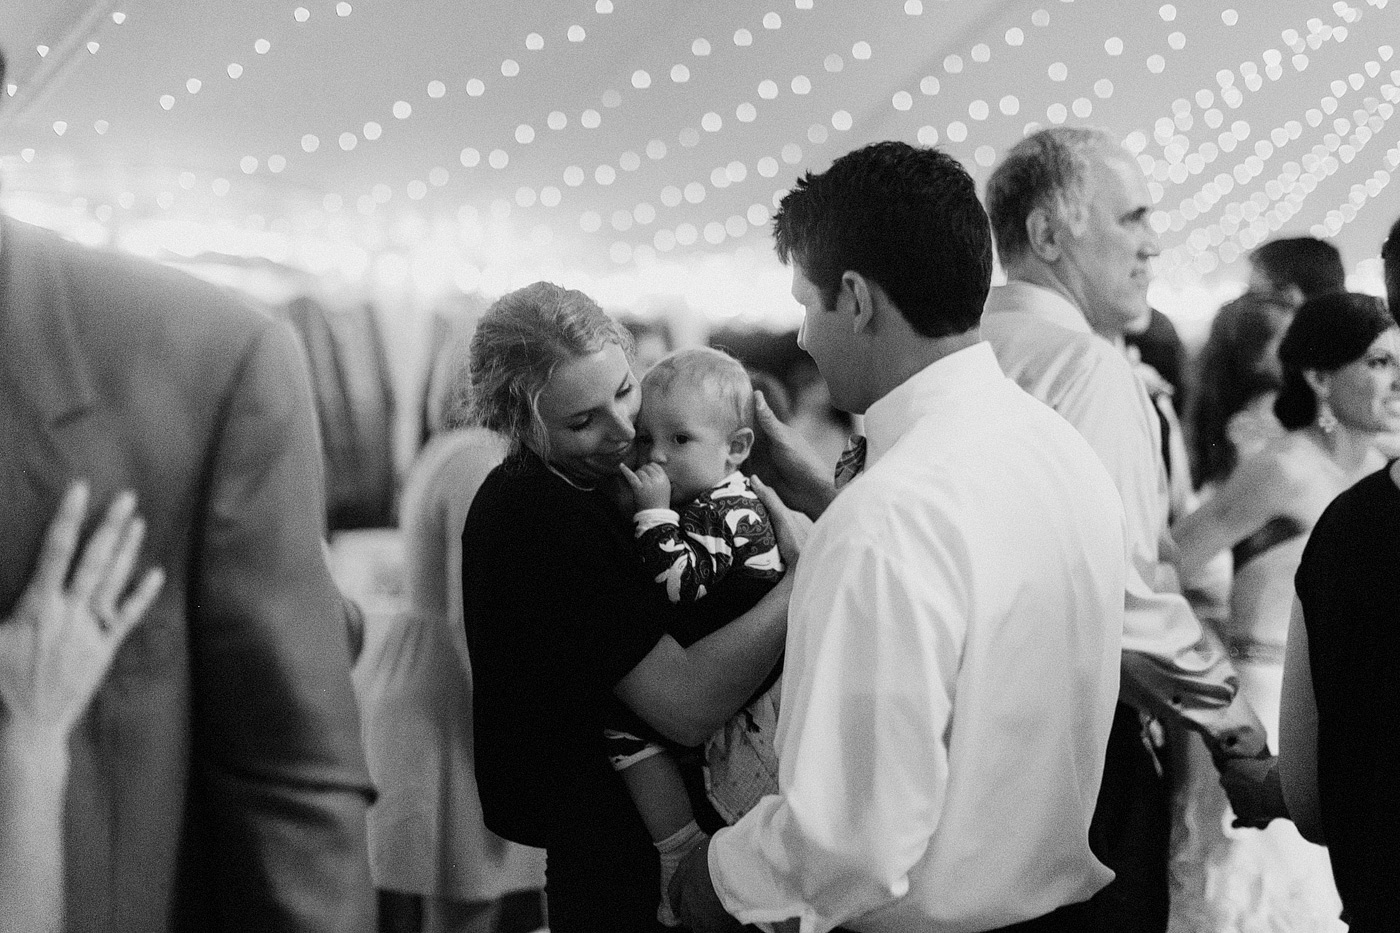 touching moment with mother father and son on wedding reception